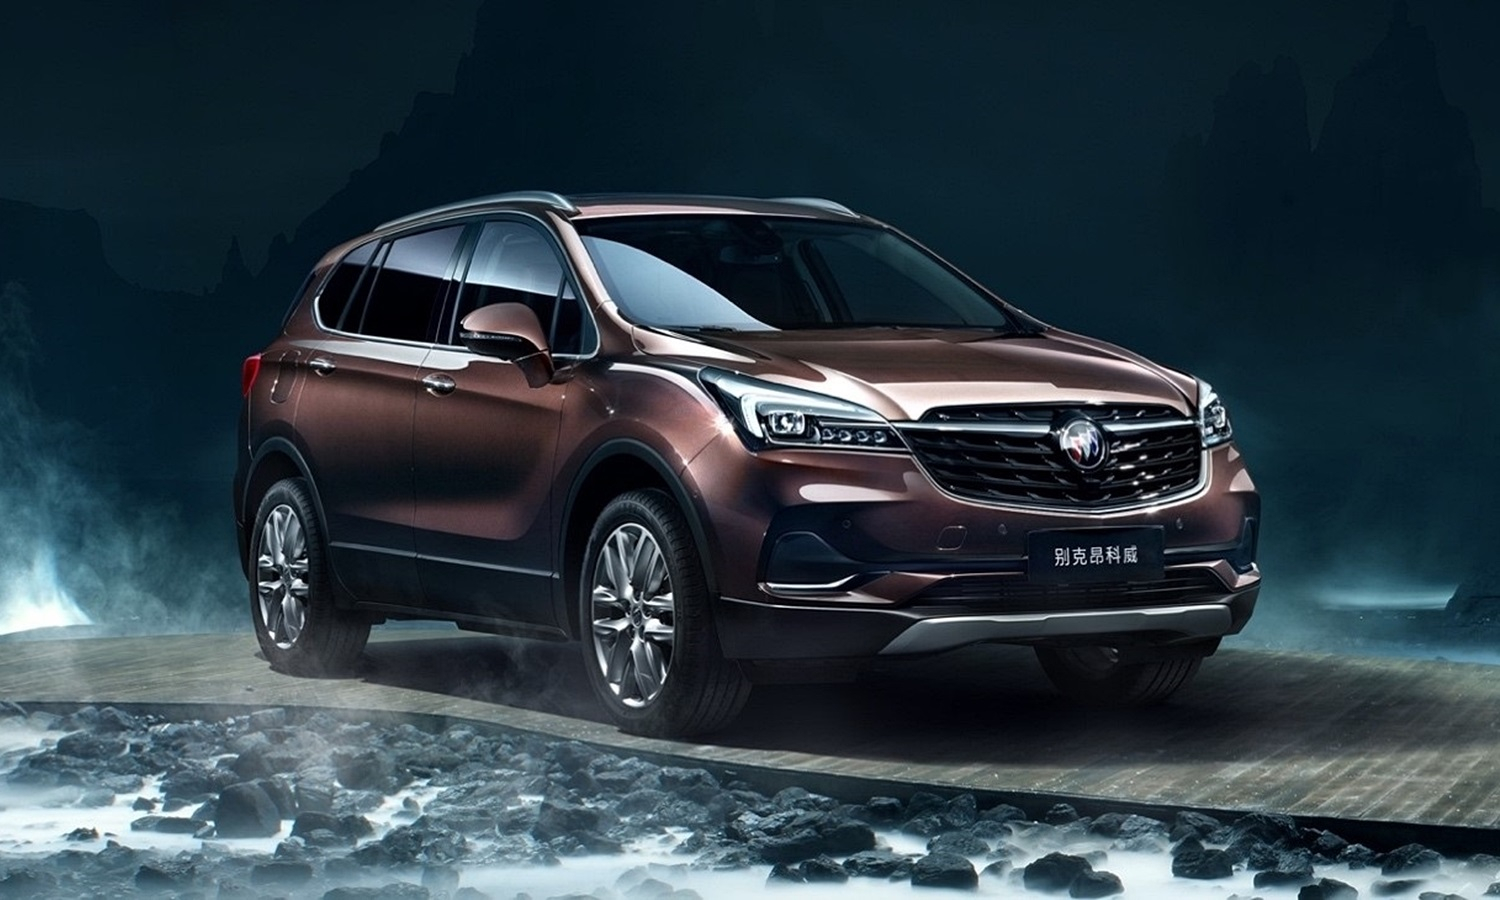 Buick Envision Set For Refresh This Year | Gm Authority New 2022 Buick Envision Interior Photos, Engine, Length